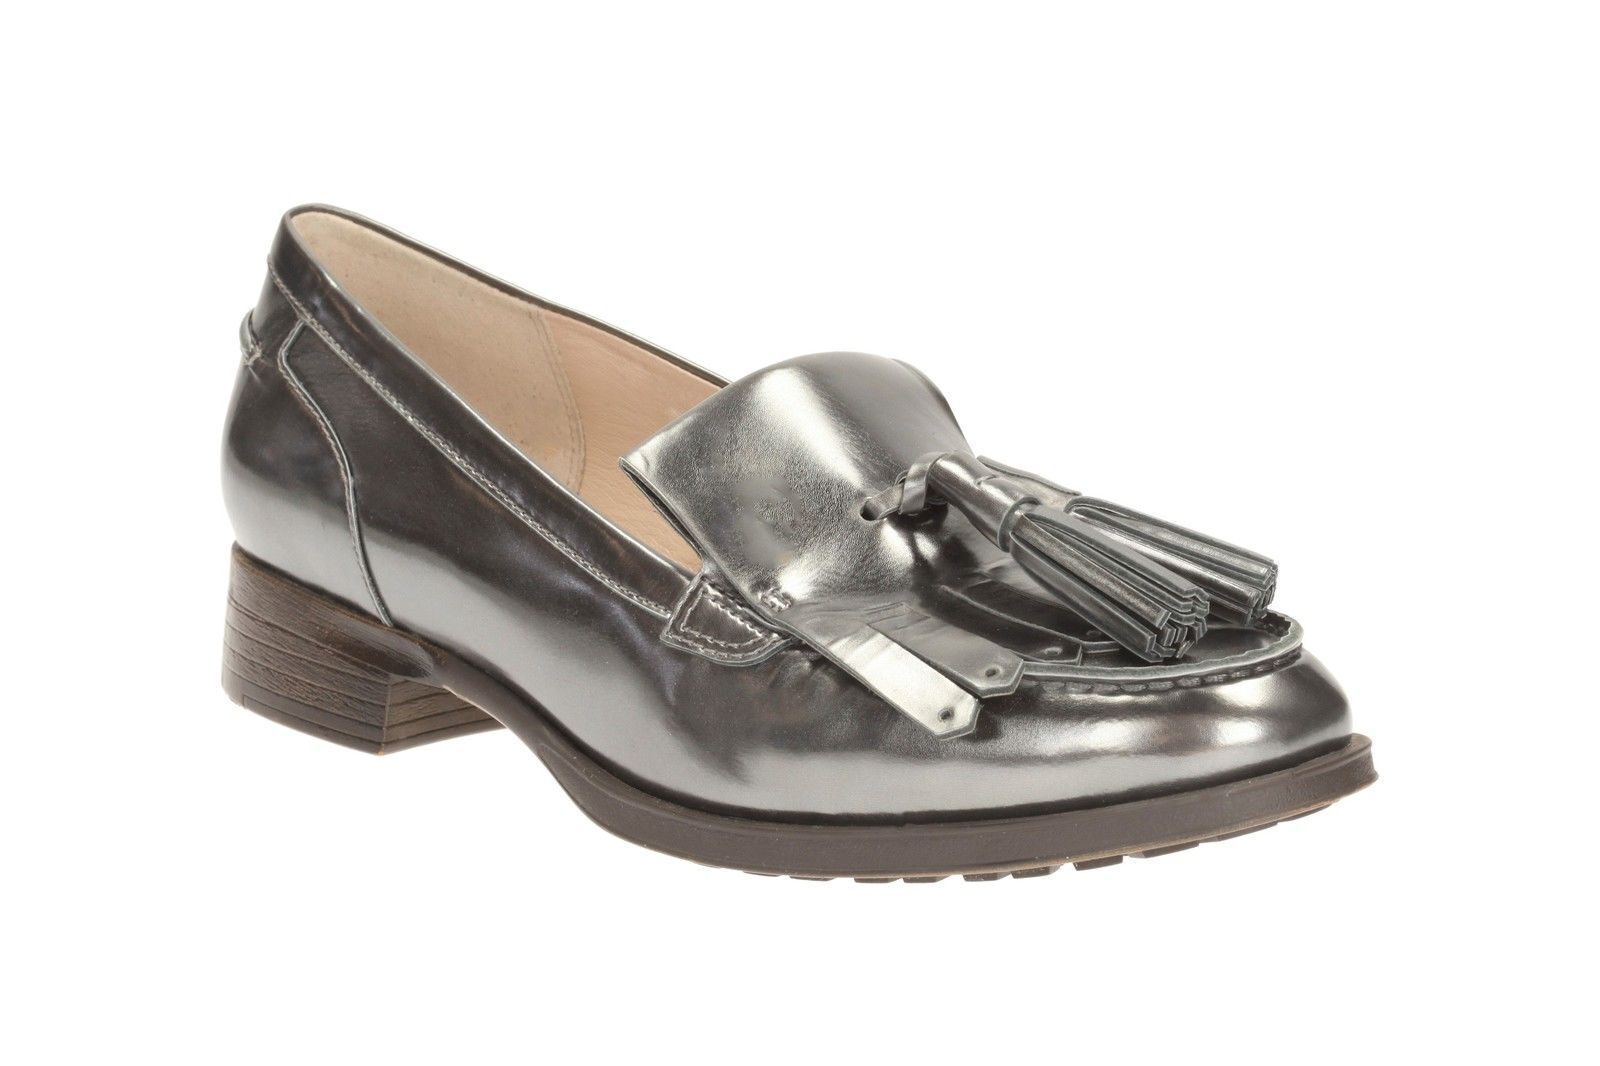 Clarks Womens Casual Busby Folly UK6 Leather Mocassin Shoes Size UK6 Folly EUR39 D 99deb0